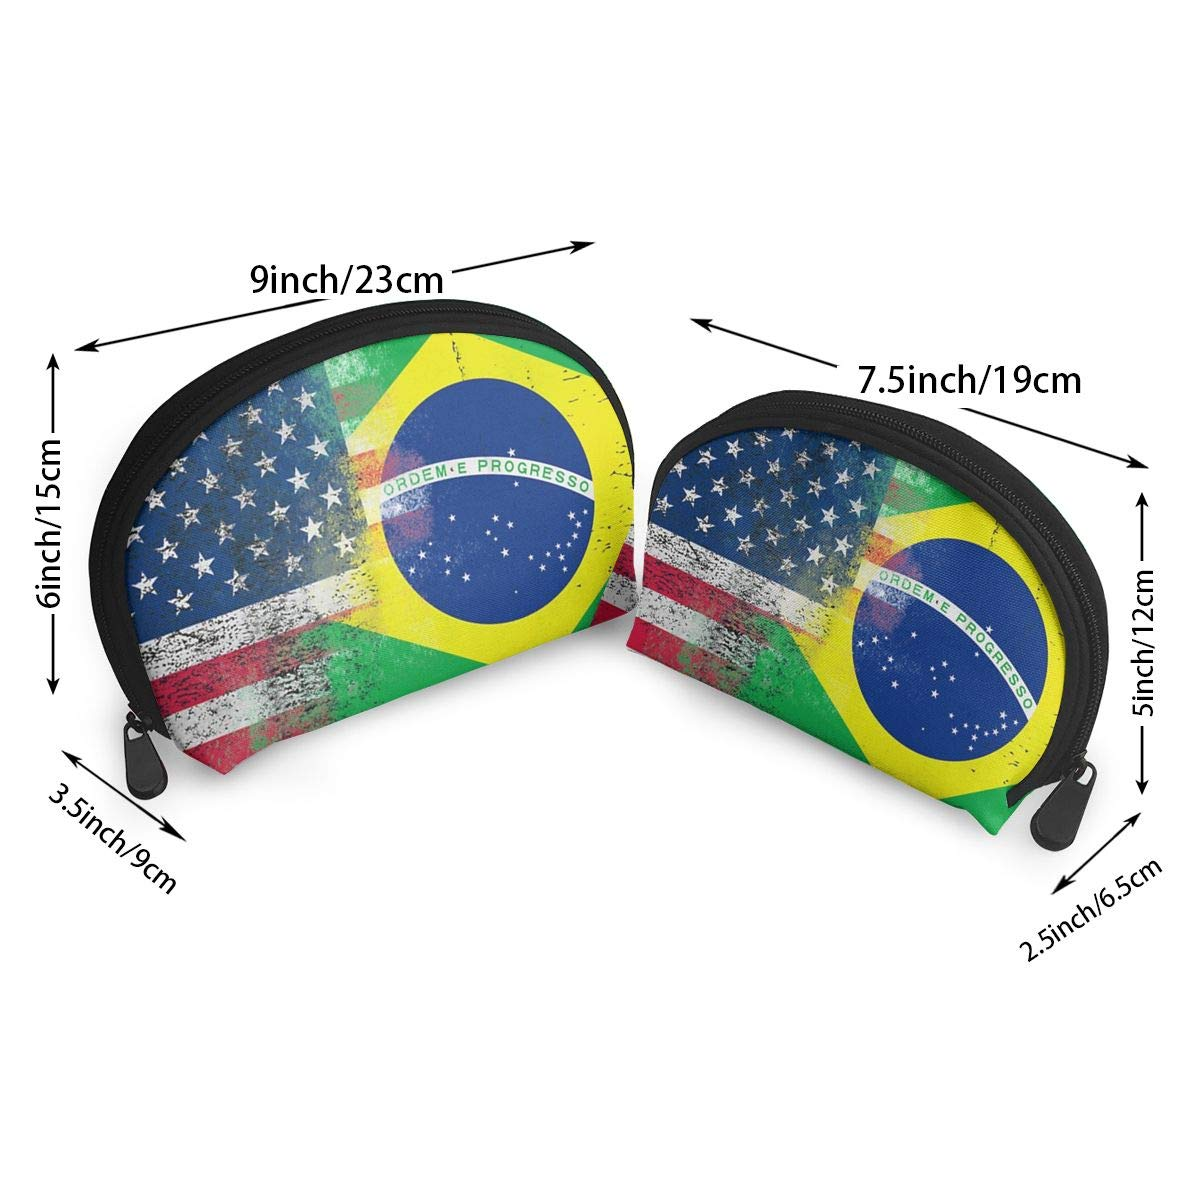 Amazon.com: UYPOPQ American and Brazilian Flags Cosmetic Bag & Case Portable Carry On Travel Toiletry Bag Makeup Quart Luggage Pouch Handbag Organizer for ...